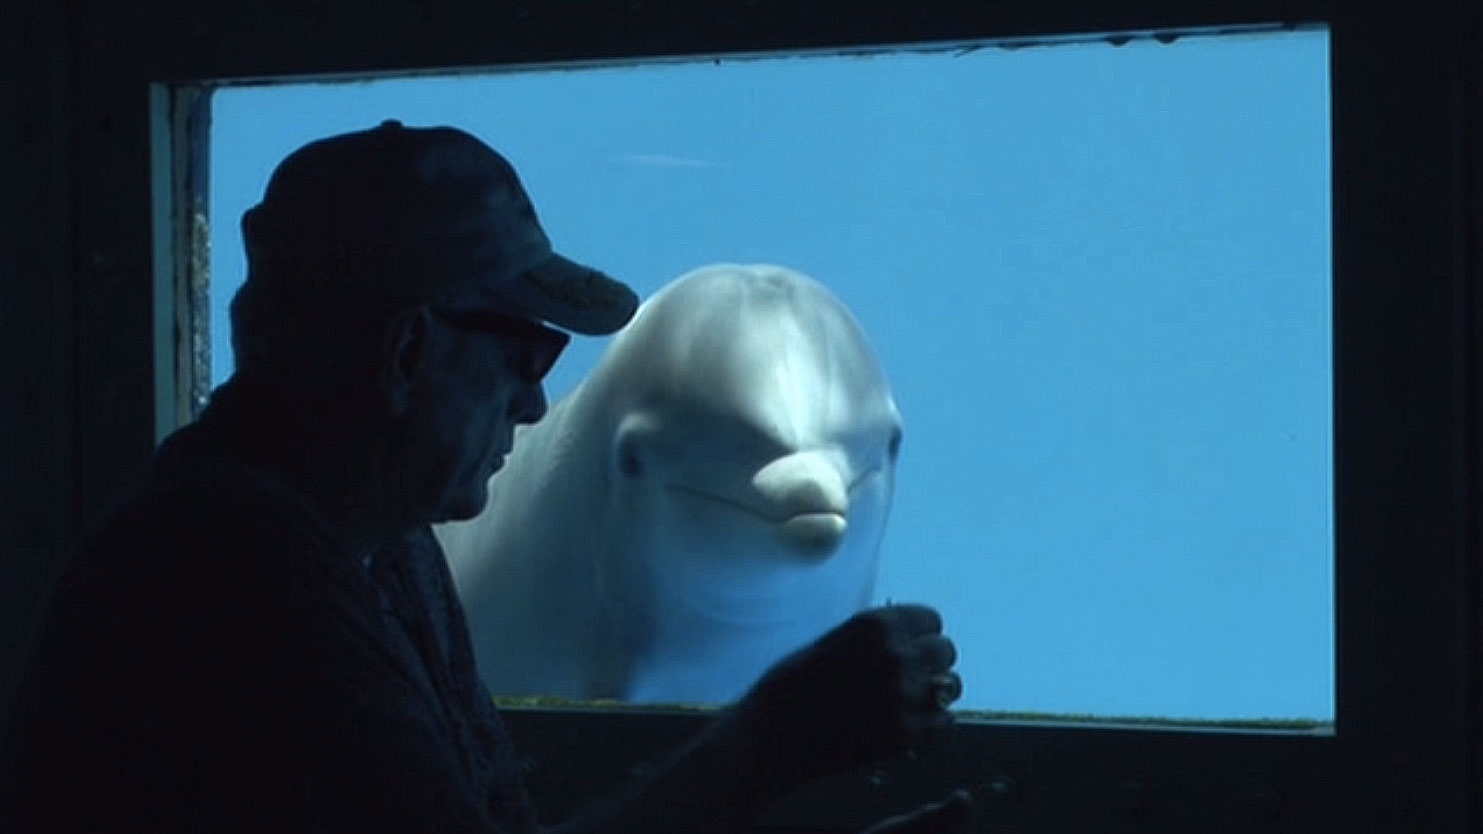 Taiji dolphin slaughter caught on film: 'The Cove' (2009)